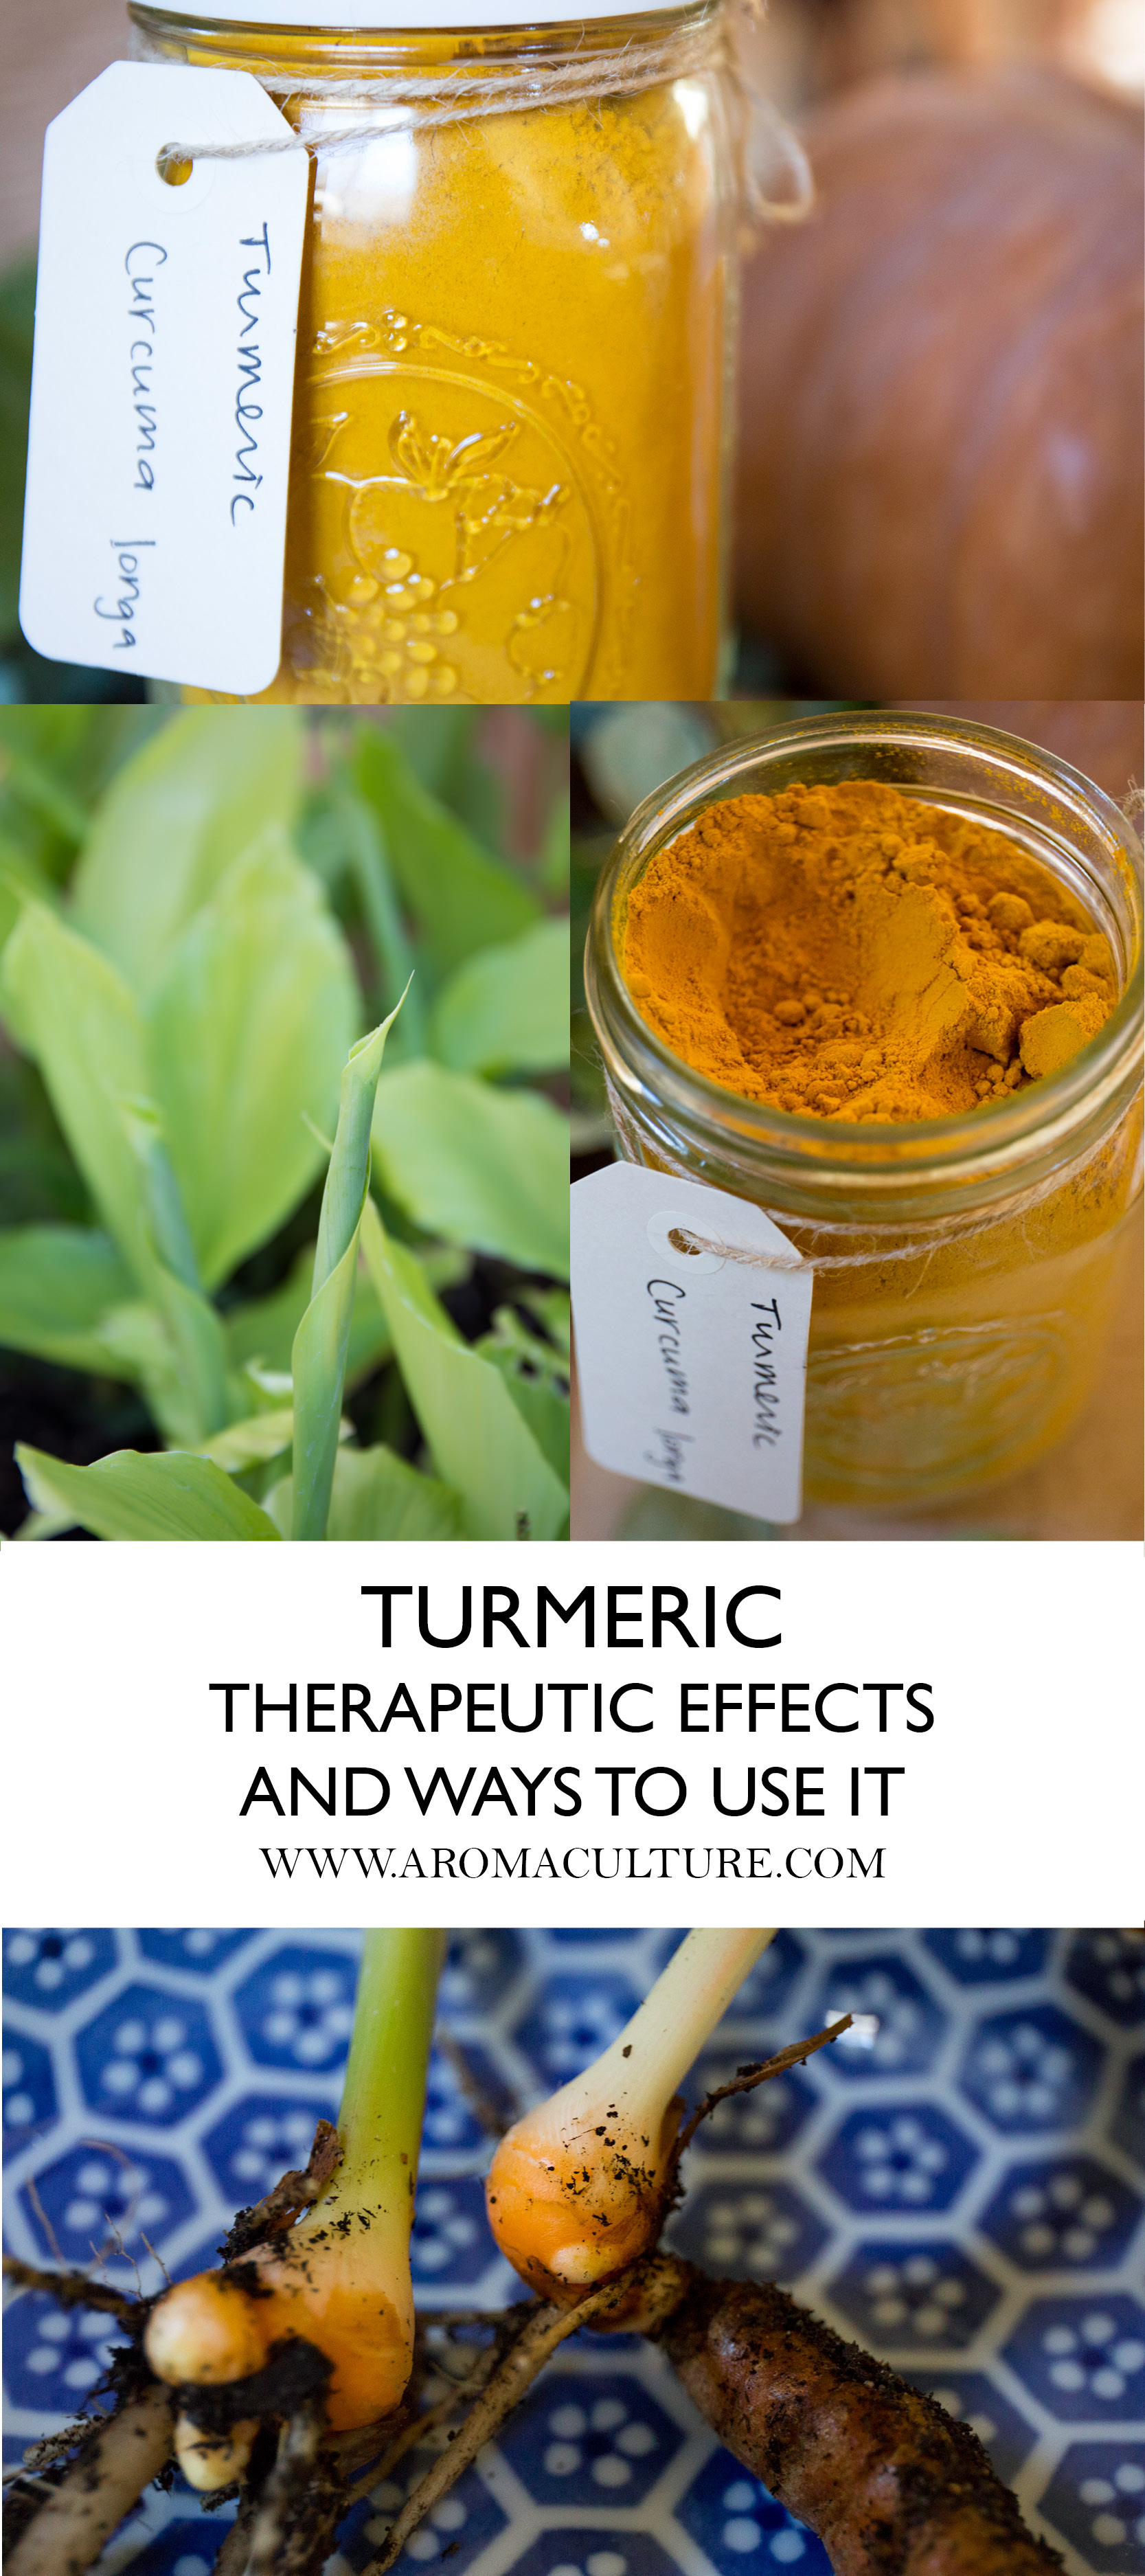 Turmeric by aromaculture.jpg